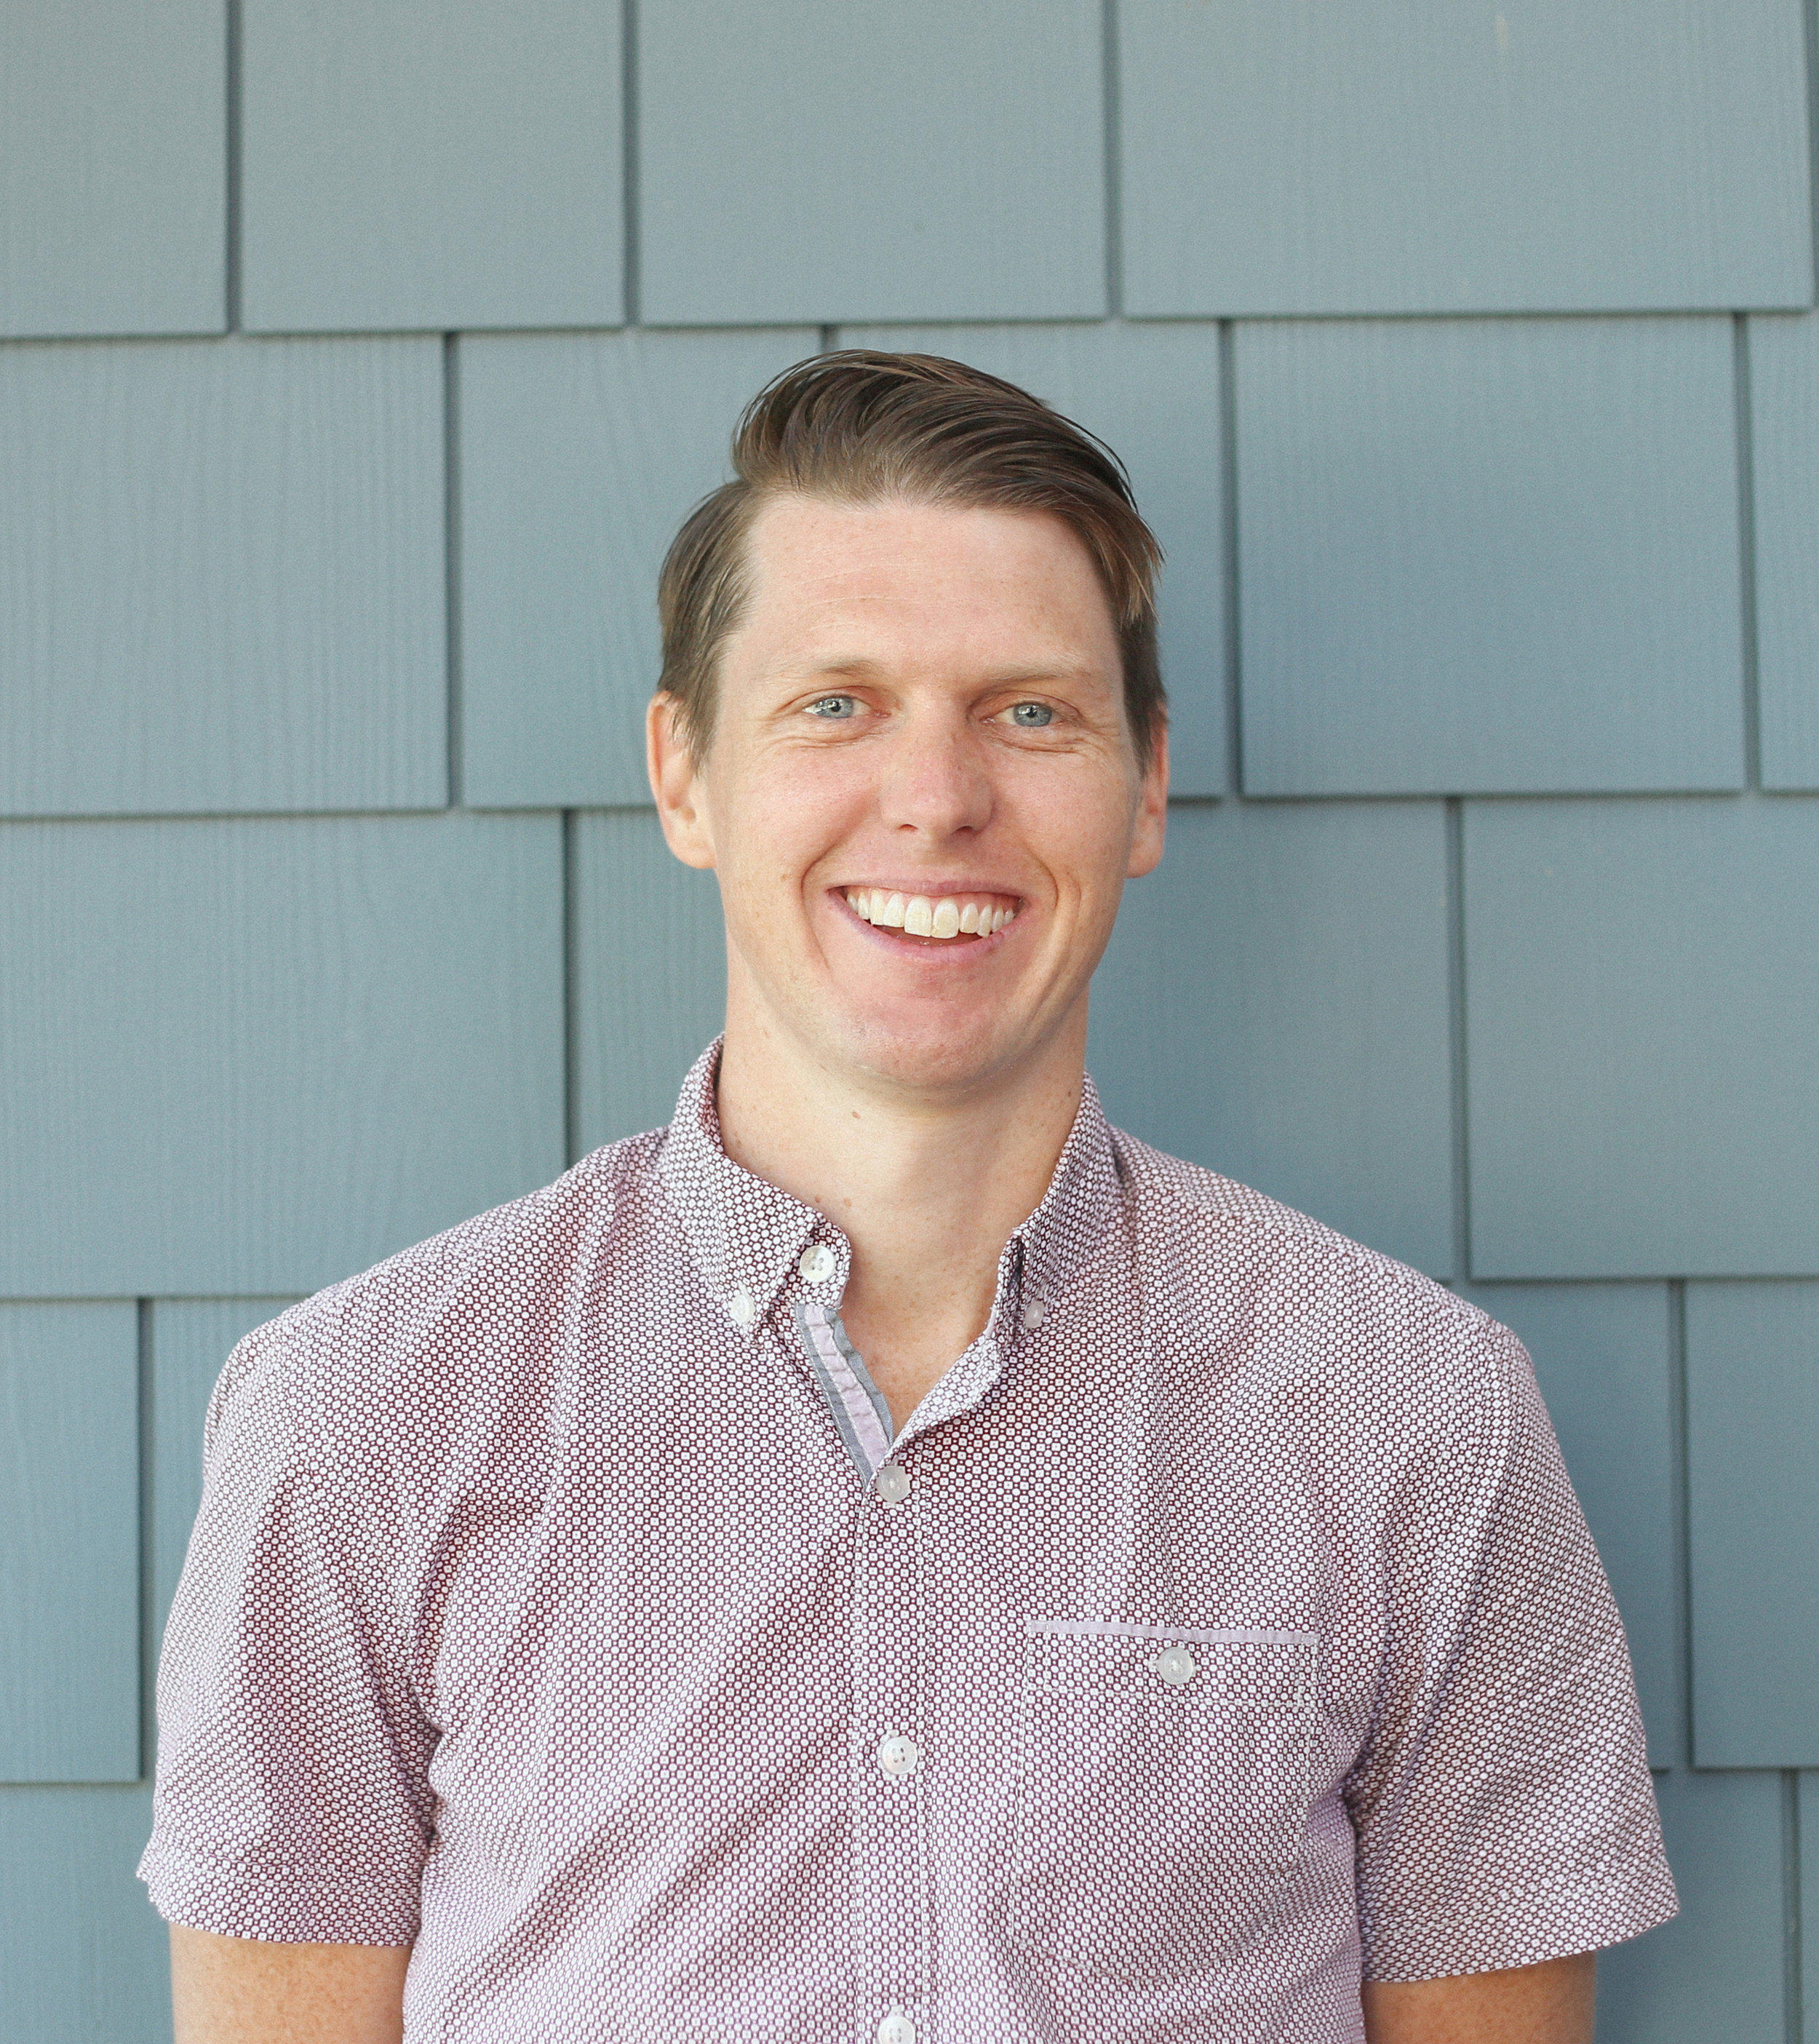 Robbie de FleuriotOwner / Physiotherapist - Robbie, a Masters of Science in Physical Therapy graduate from the University of Alberta, utilizes a number of approaches in his practice to meet his clients' individual needs. These approaches include manual therapy, exercise prescription, functional dry needling (IMS) and other therapeutic modalities. Robbie is hands on and works at empowering his clients to take an active approach to their treatment and ongoing health and believes in taking a holistic approach to one's rehabilitation.Personable, genuine care is key for Robbie as his favourite part of his practice is getting to know each of his clients on a personal basis.